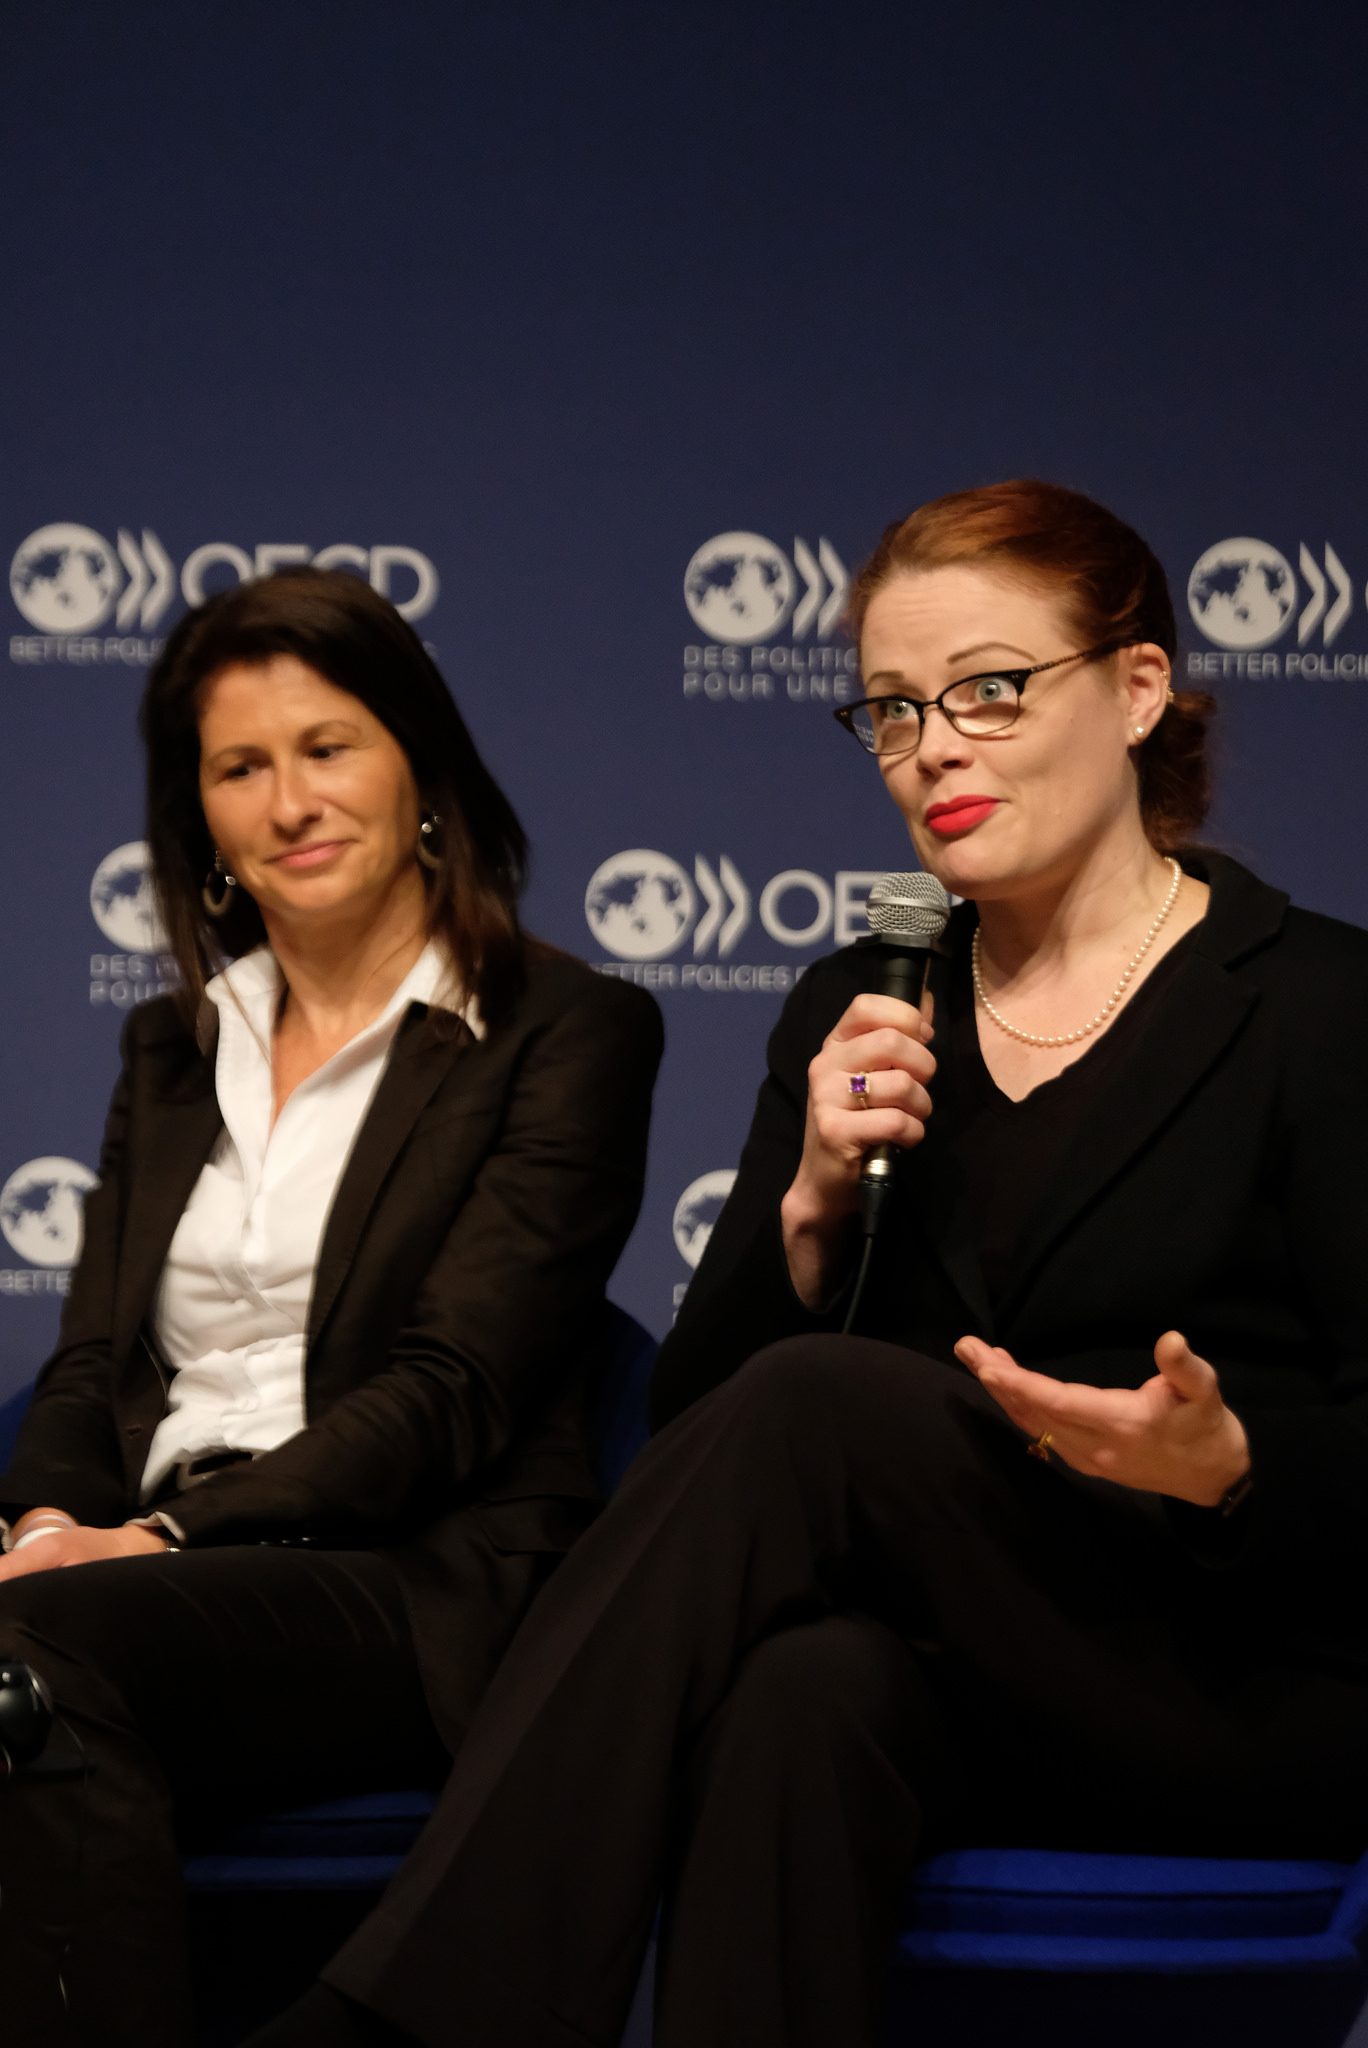 Emmanuelle Quiles, CEO, Janssen France & Tarah Wheeler, Principal Security Advisor and Cybersecurity Policy Fellow, New America, United States